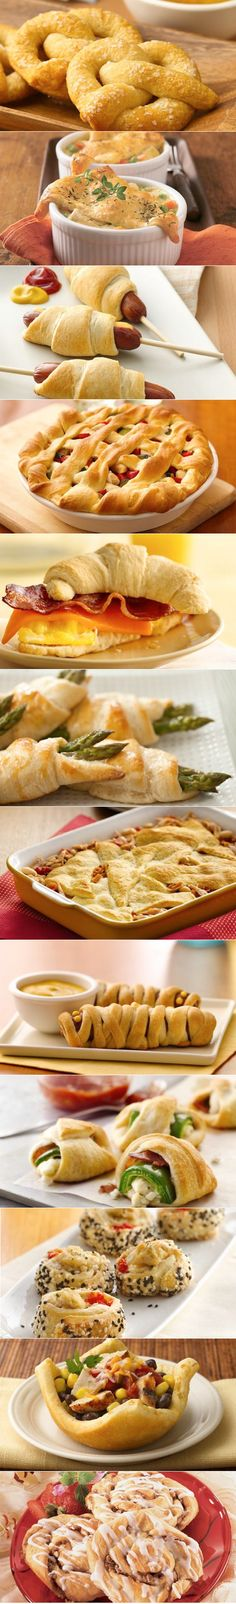 Lots of great Crescent Roll Recipes